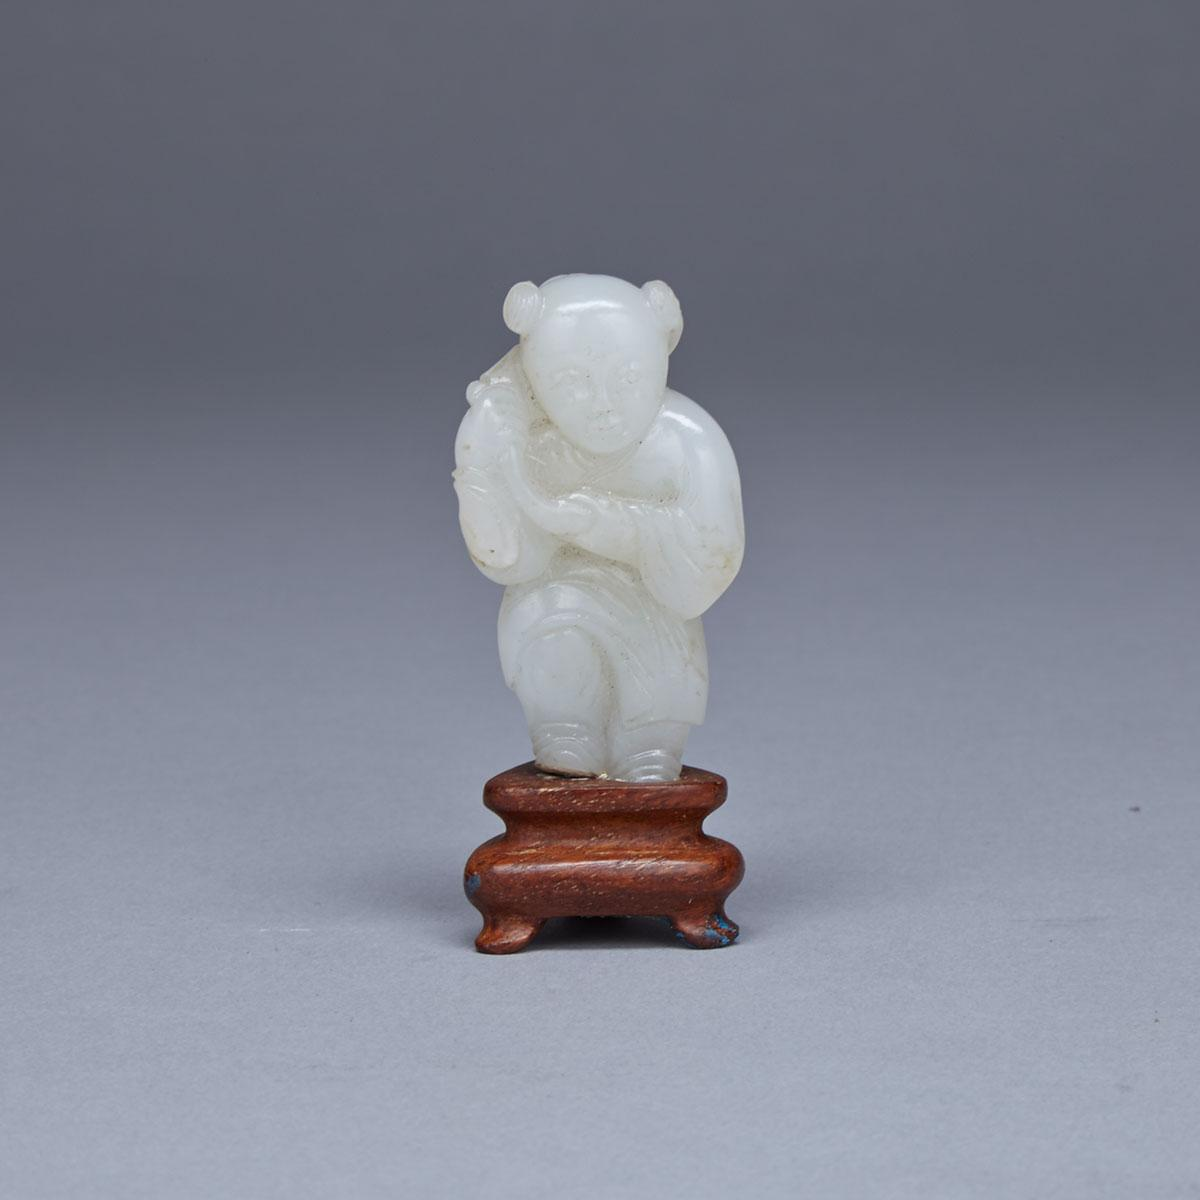 White Jade Miniature Figure of a Boy, 19th Century